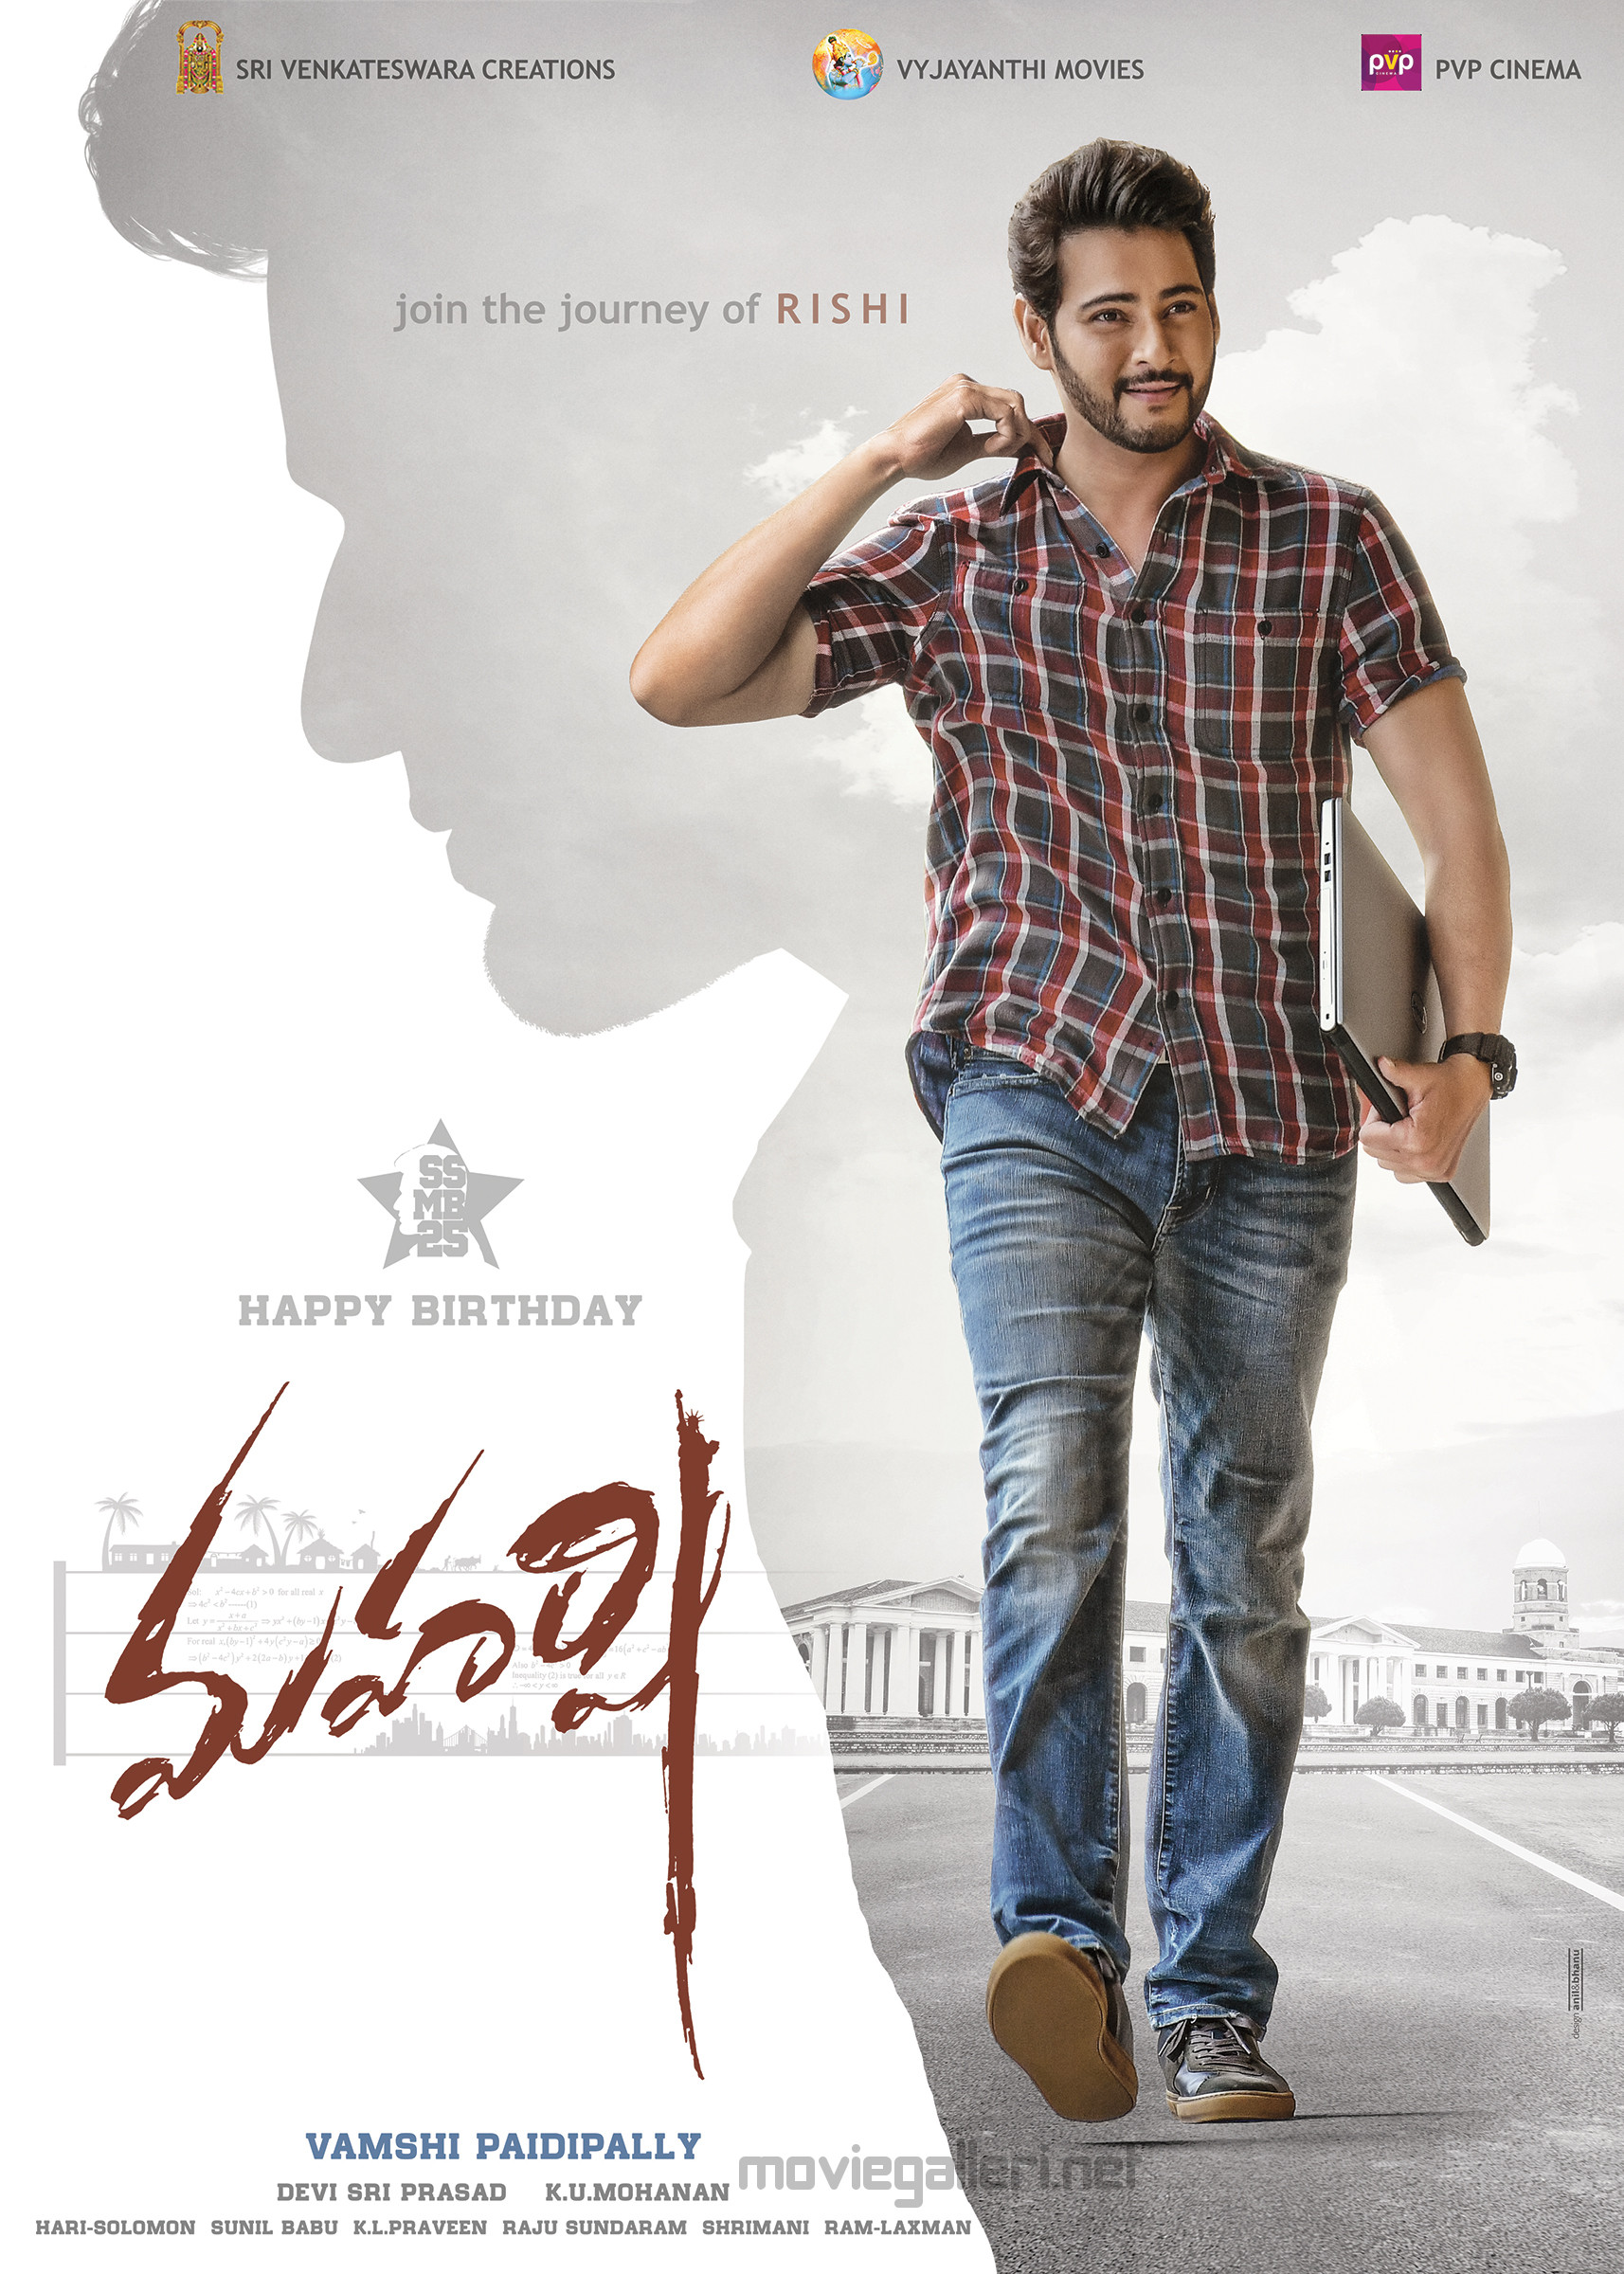 mahesh babu maharshi movie first look poster hd | new movie posters